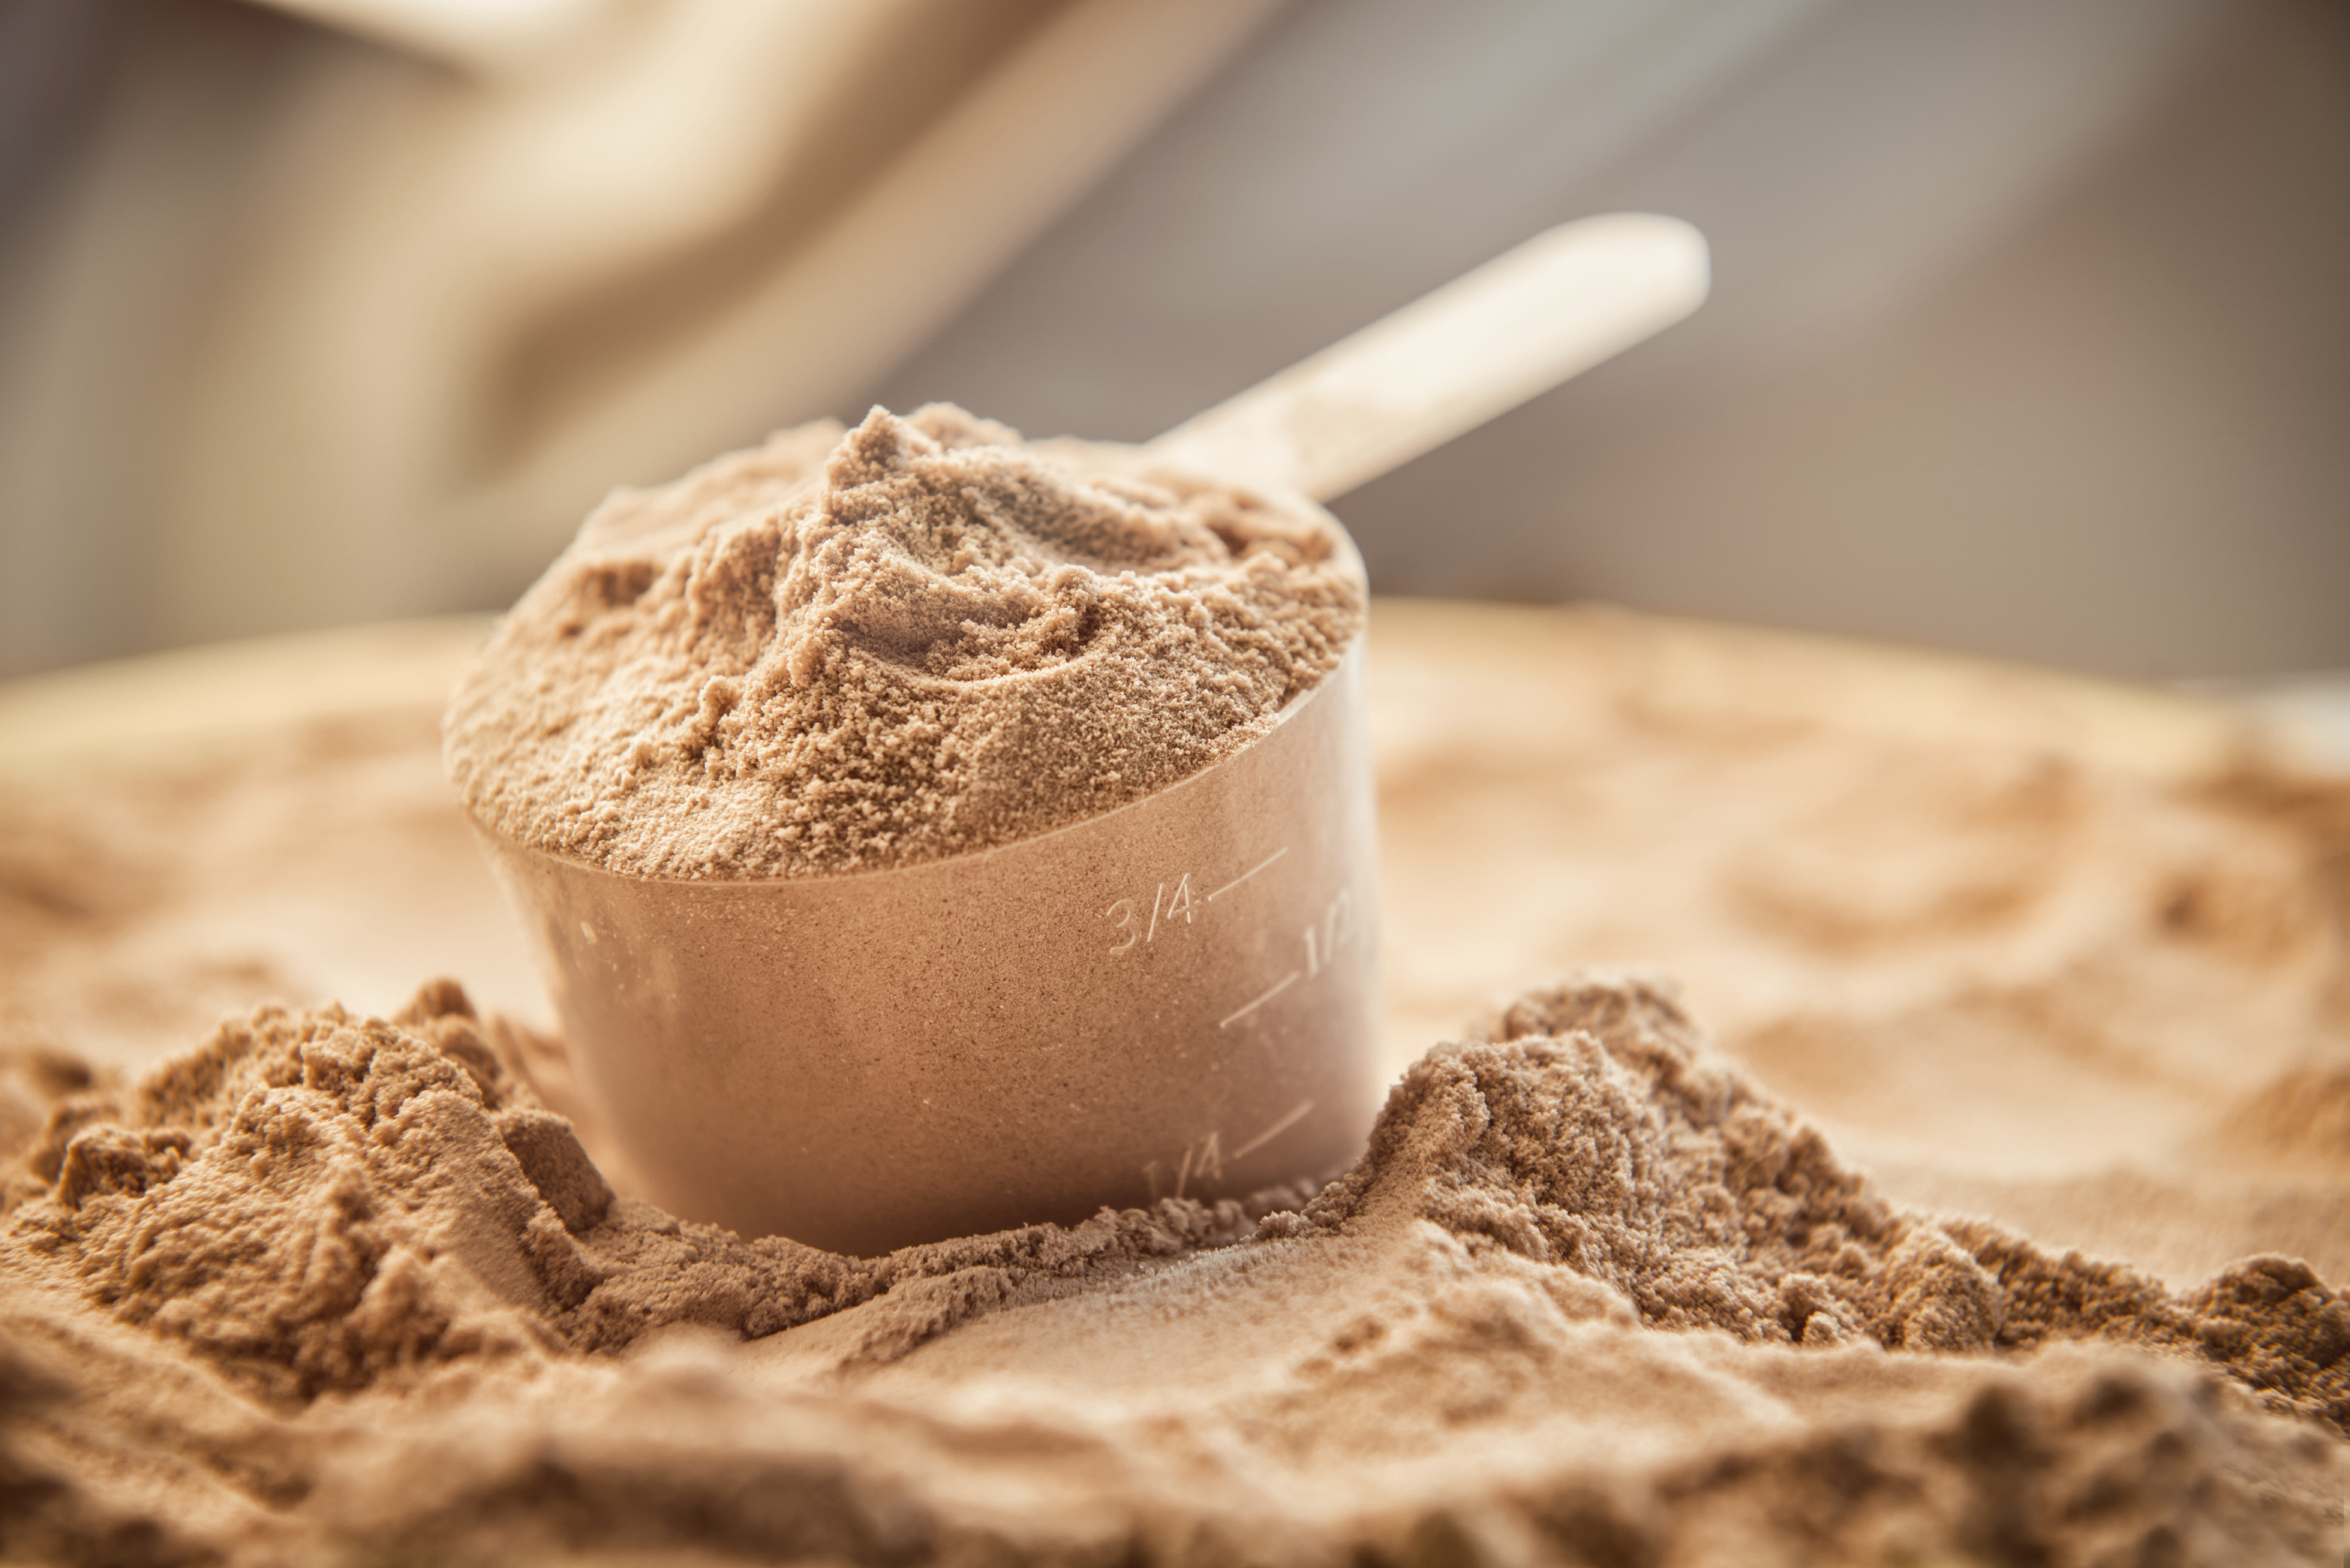 Organic whey protein powder from Envir